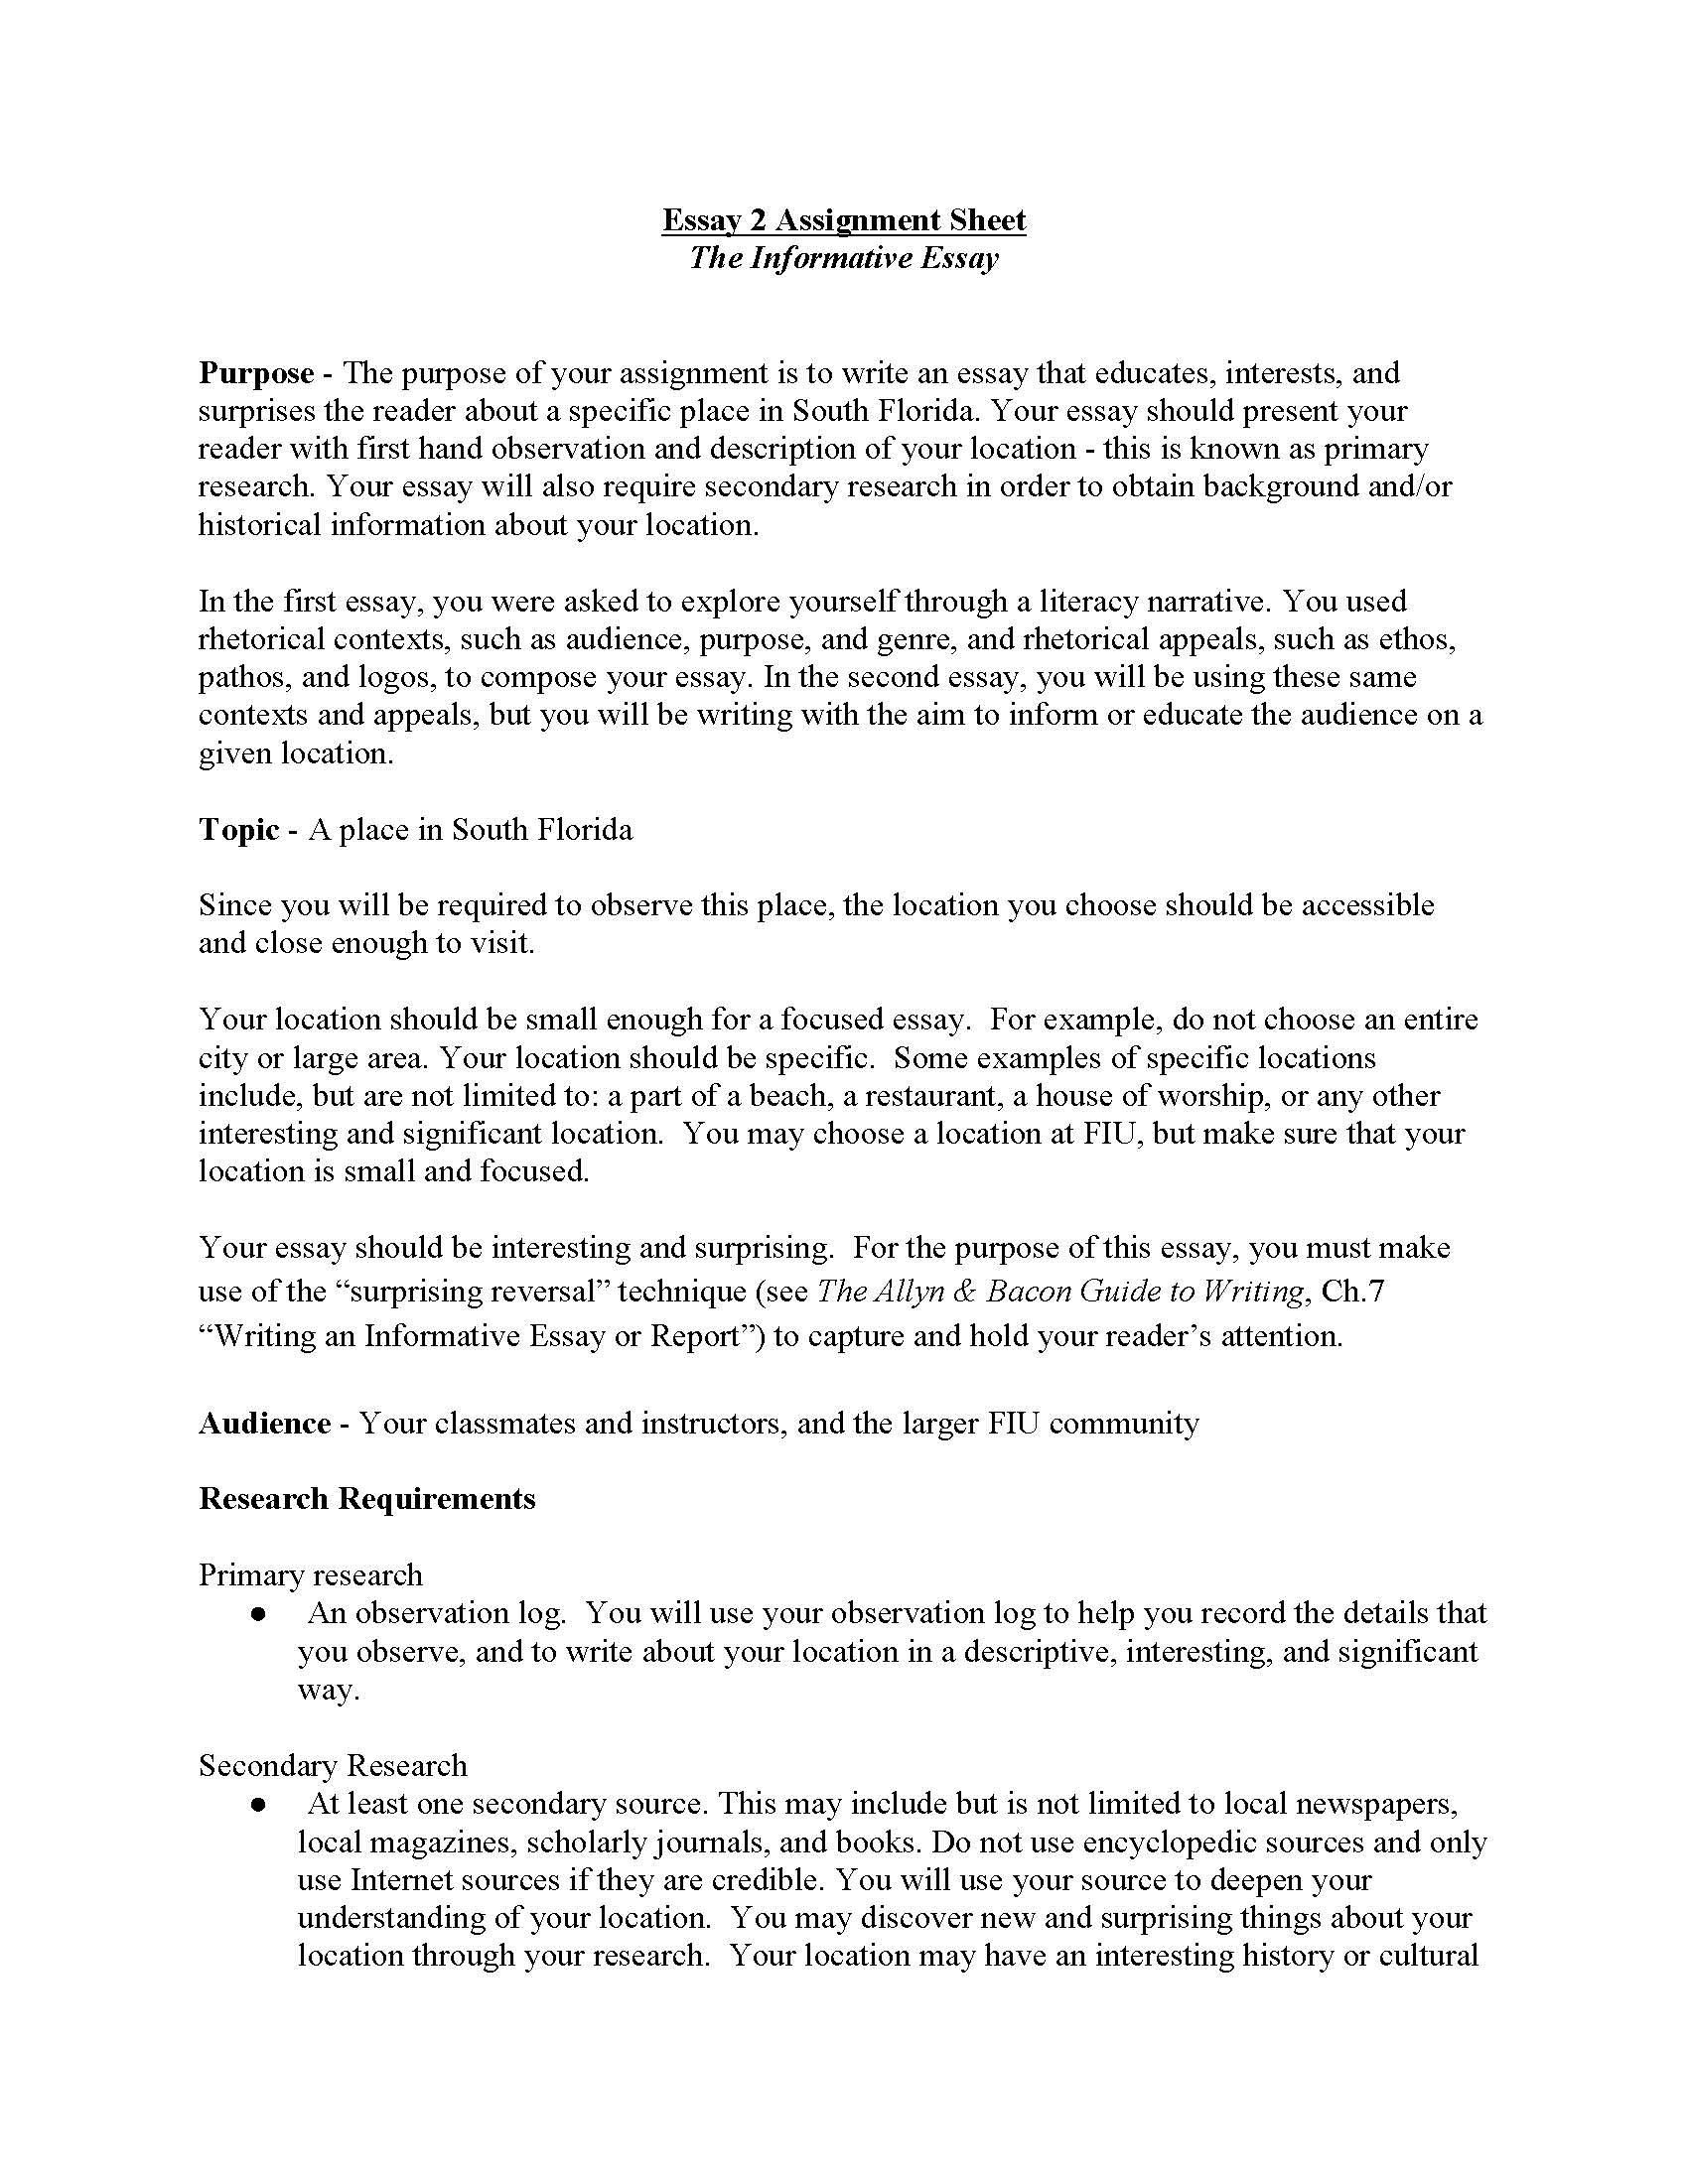 002 Essay Example Informative Topics Unit Assignment Page 1 Remarkable Prompt 4th Grade Prompts For High School Expository College Students Full